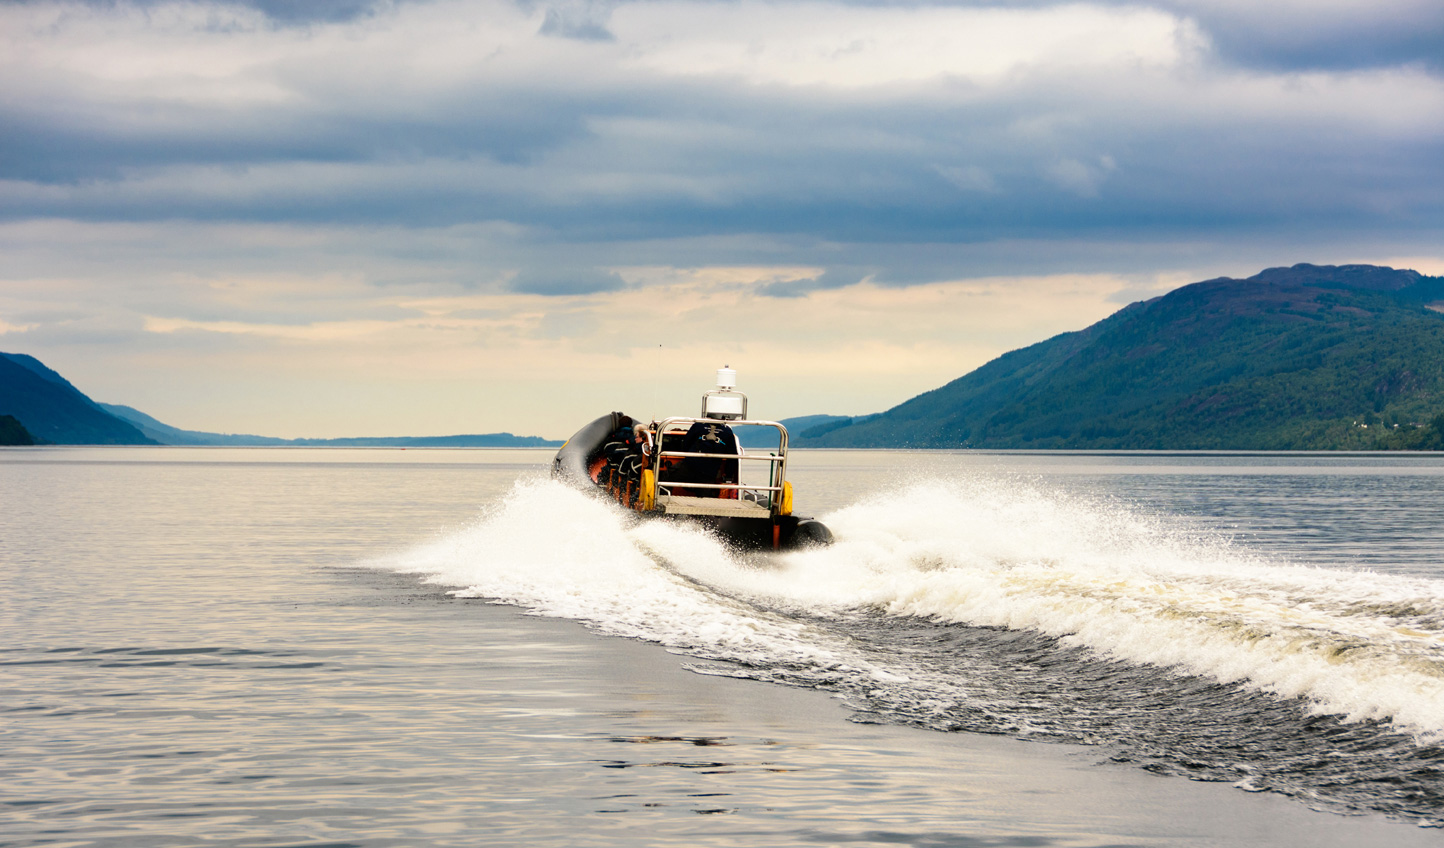 Speed across Loch Ness in search of mythical beasts